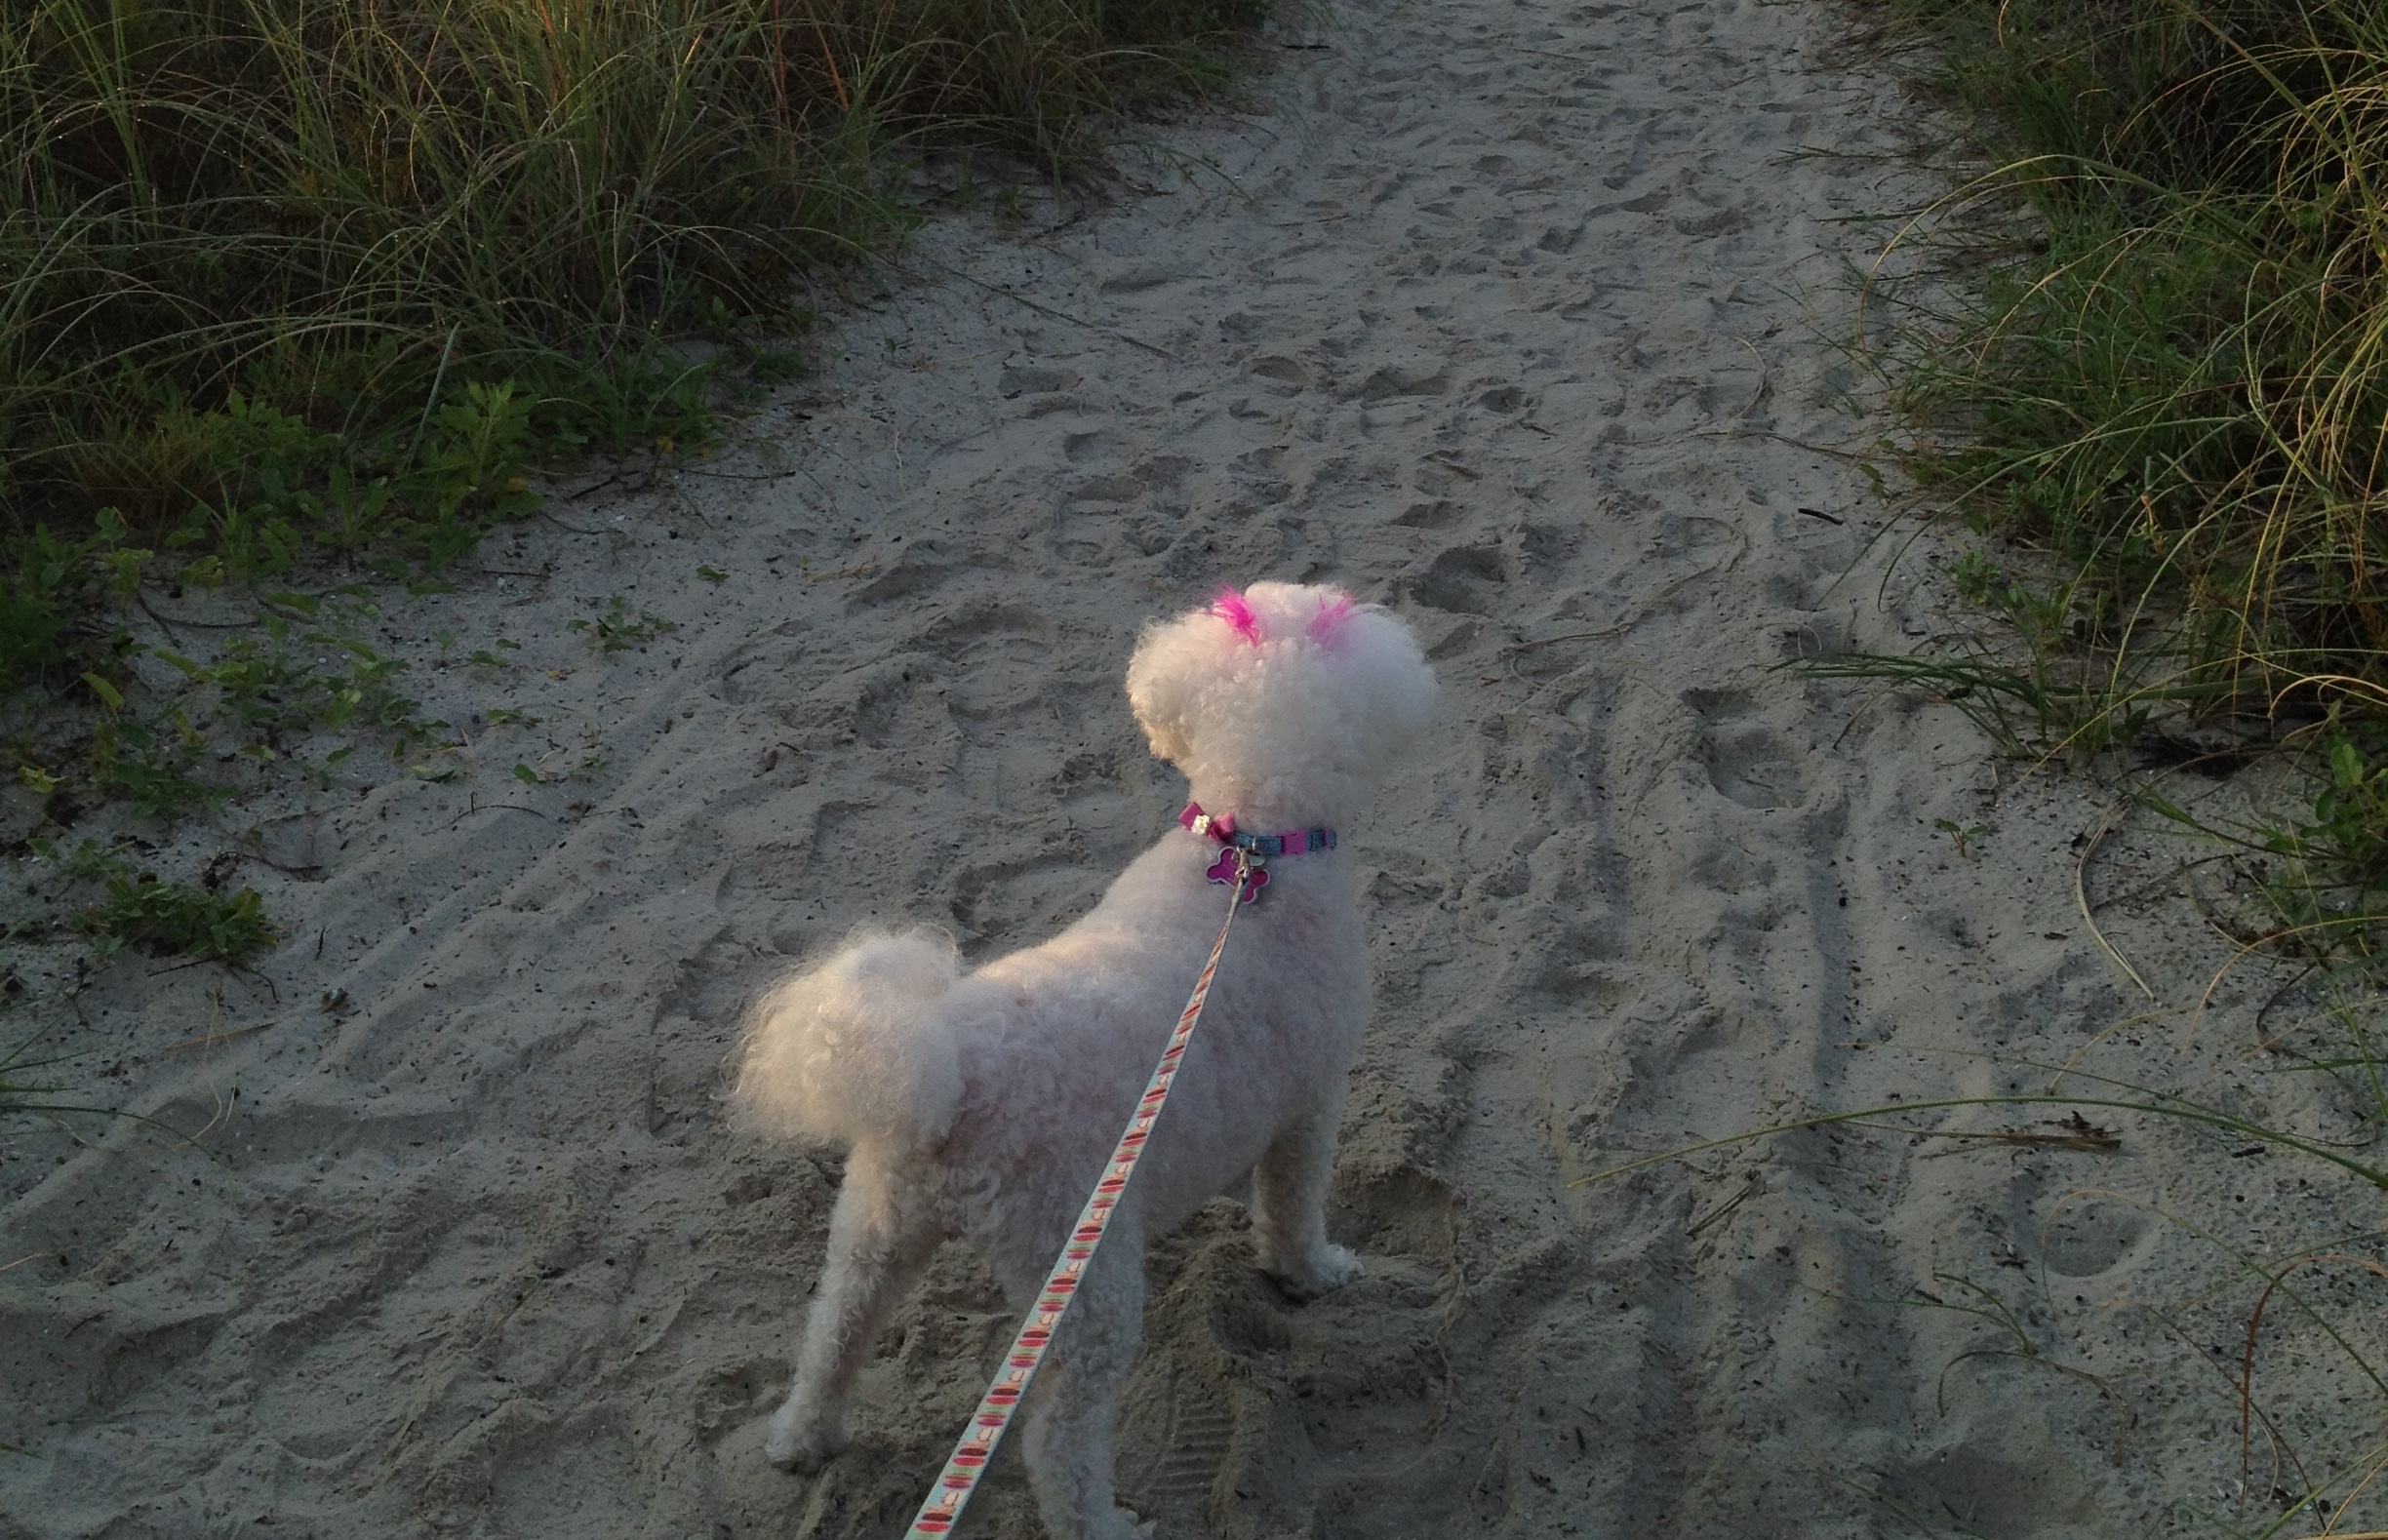 dog friendly hilton head island, sc bring fidodog friendly hilton head island, sc